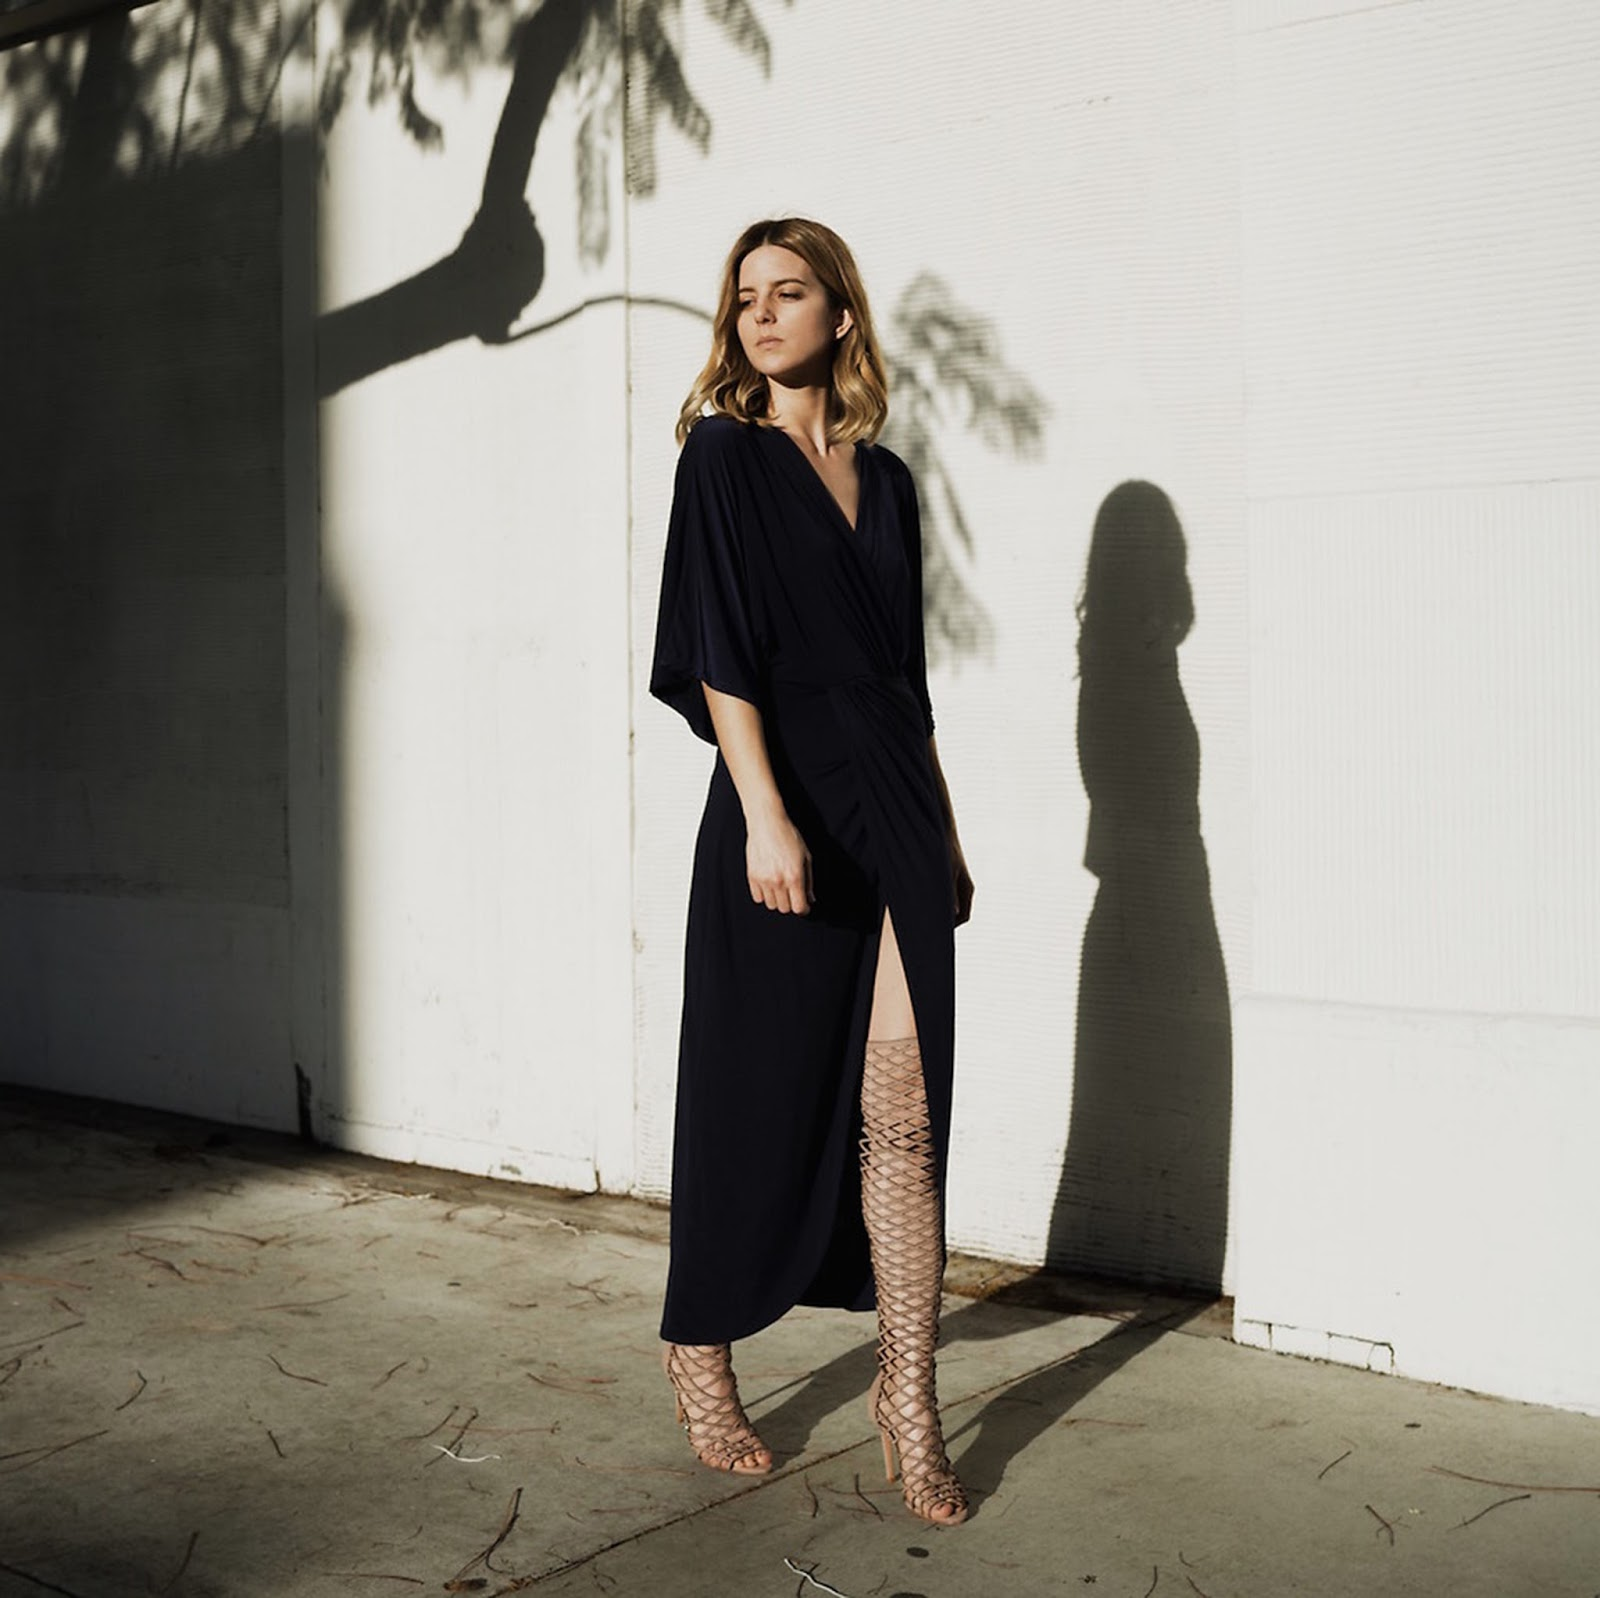 take aim, michelle madsen, tips for bloggers, secrets to blogging success, top blogger, top LA bloggers, how to be a successful blogger, how to start a blog, how to grow a blog,